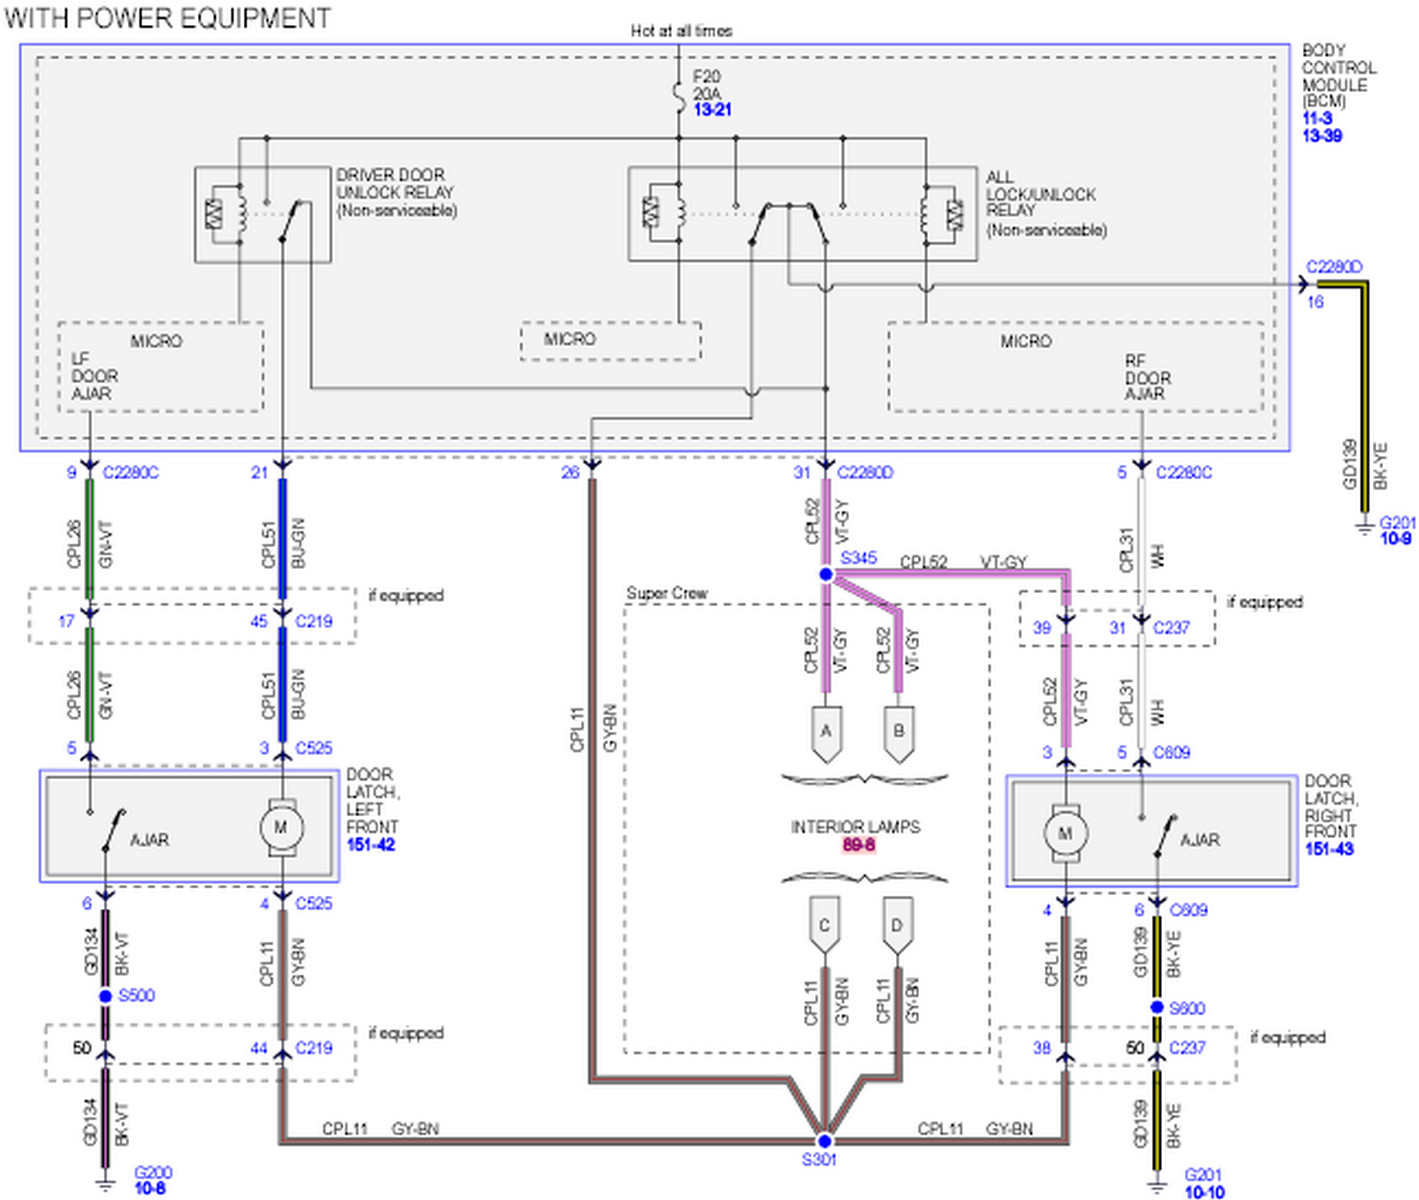 2008 ford f 150 stereo wiring diagram rn 3148  2006 ford f 150 truck stereo wiring diagram  ford f 150 truck stereo wiring diagram